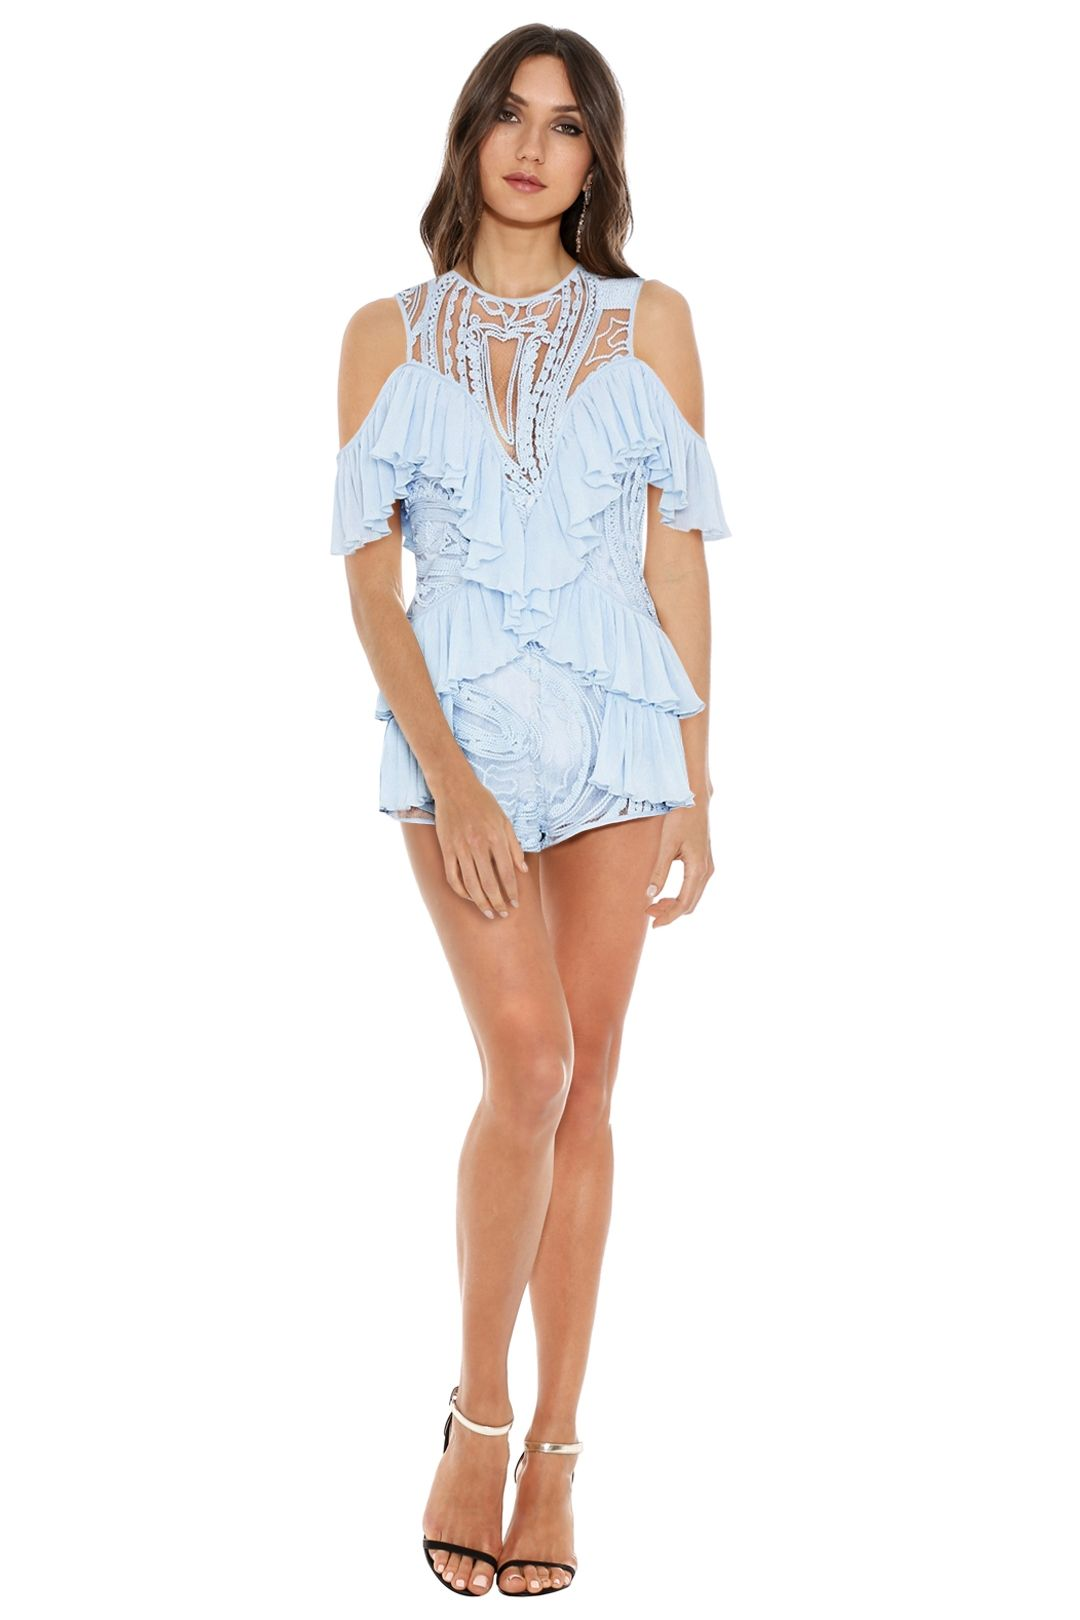 Alice McCall - You're so young So Have Fun Girl - Ice Blue - Front